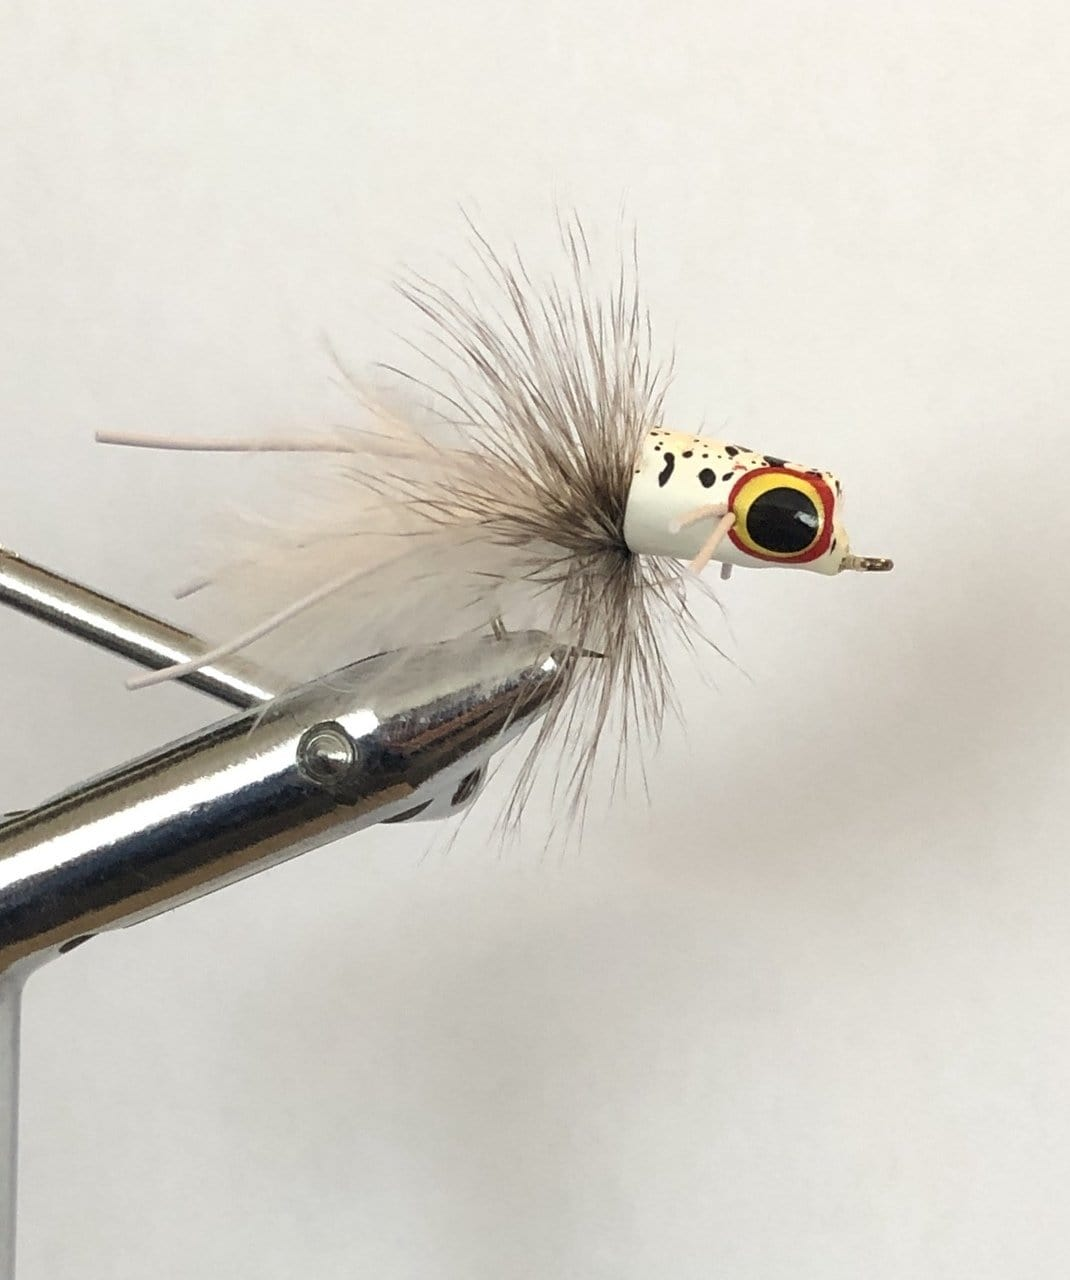 Wild Water White Snub Nose Slider Popper by Pultz Poppers, Size 8, Qty. 4